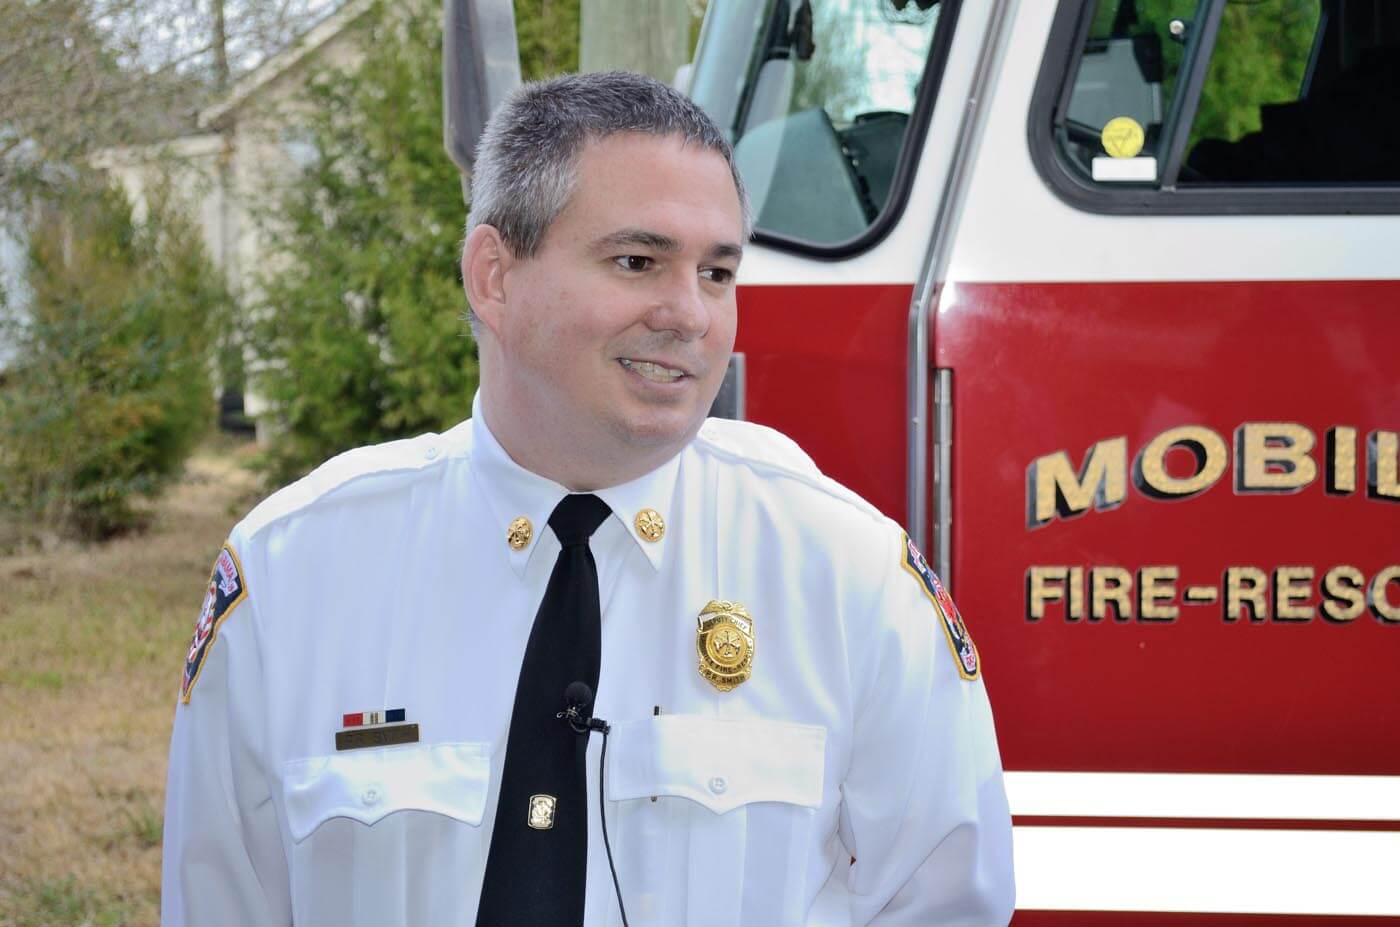 With confirmation in the balance, interim Fire Chief unveils 'Neighborhood Fire Station' program